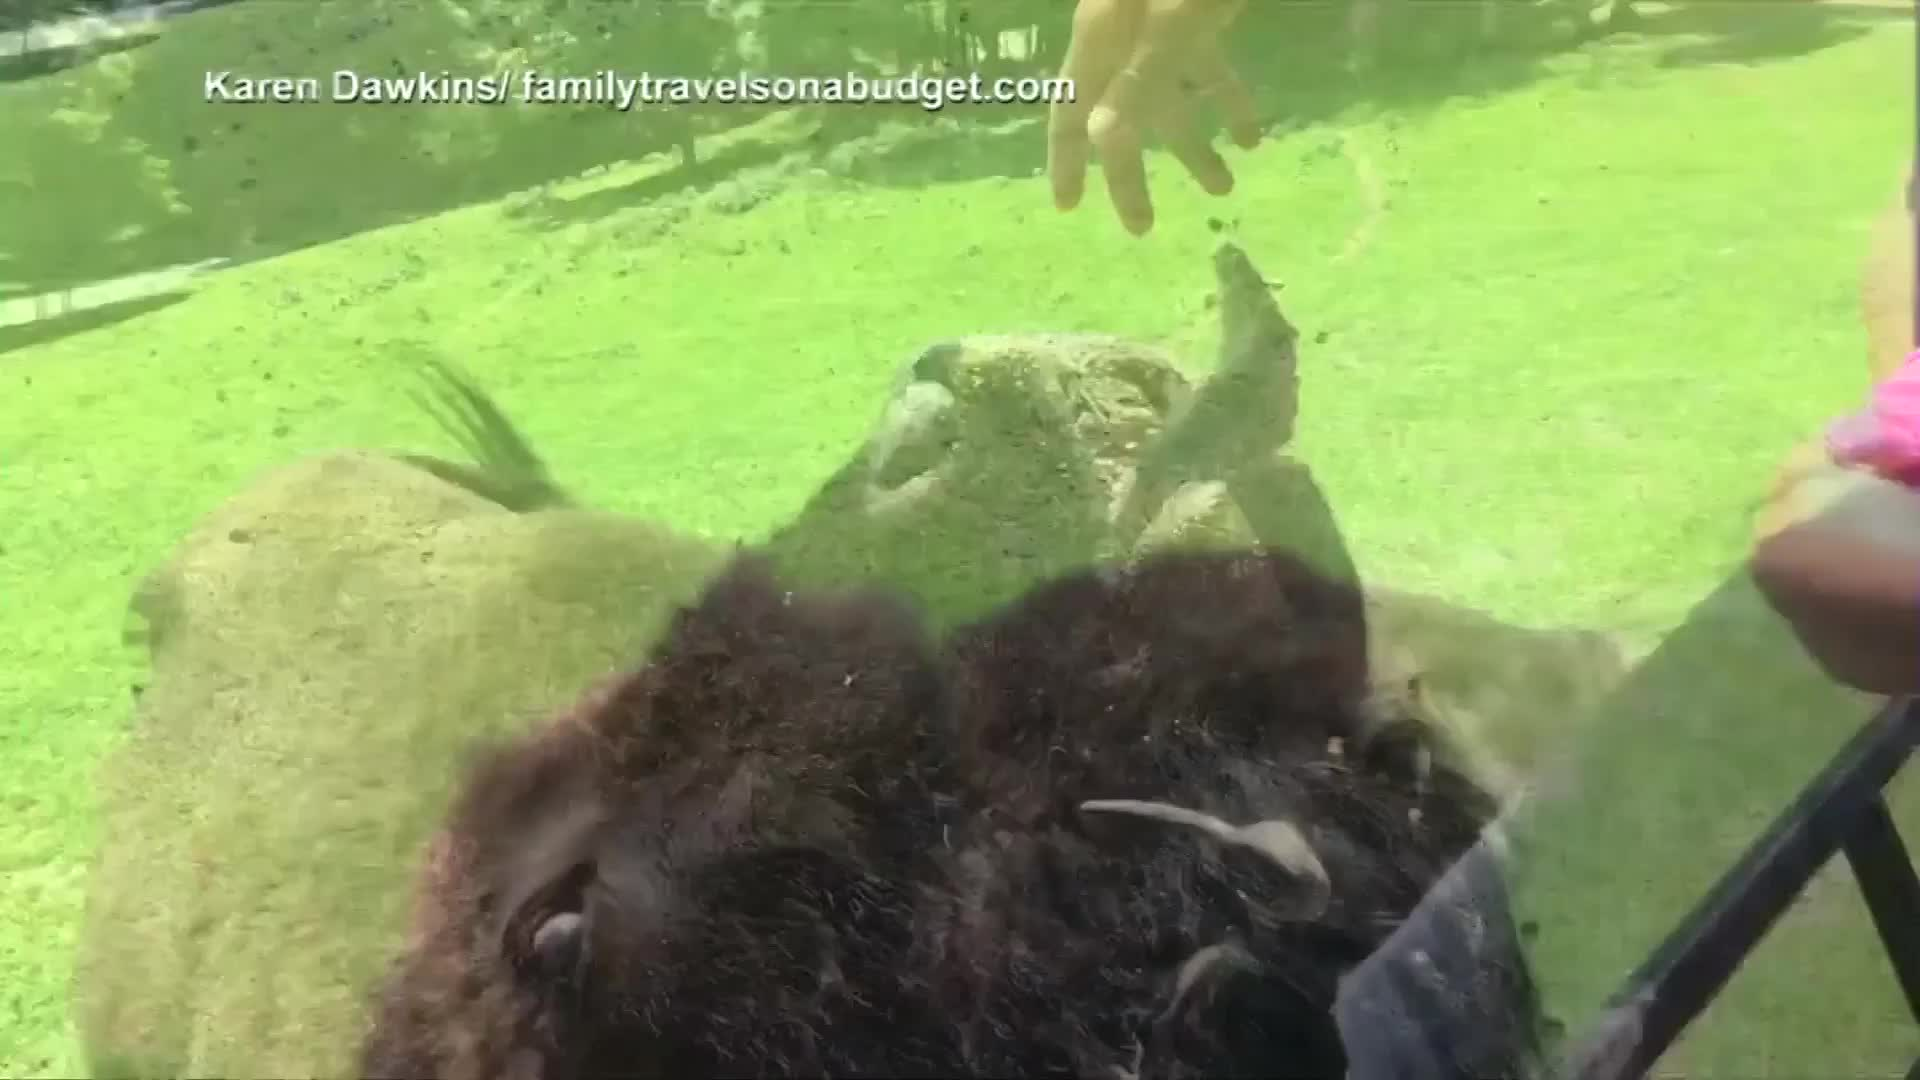 Kids marvel at Virginia bison's giant tongue at feeding time